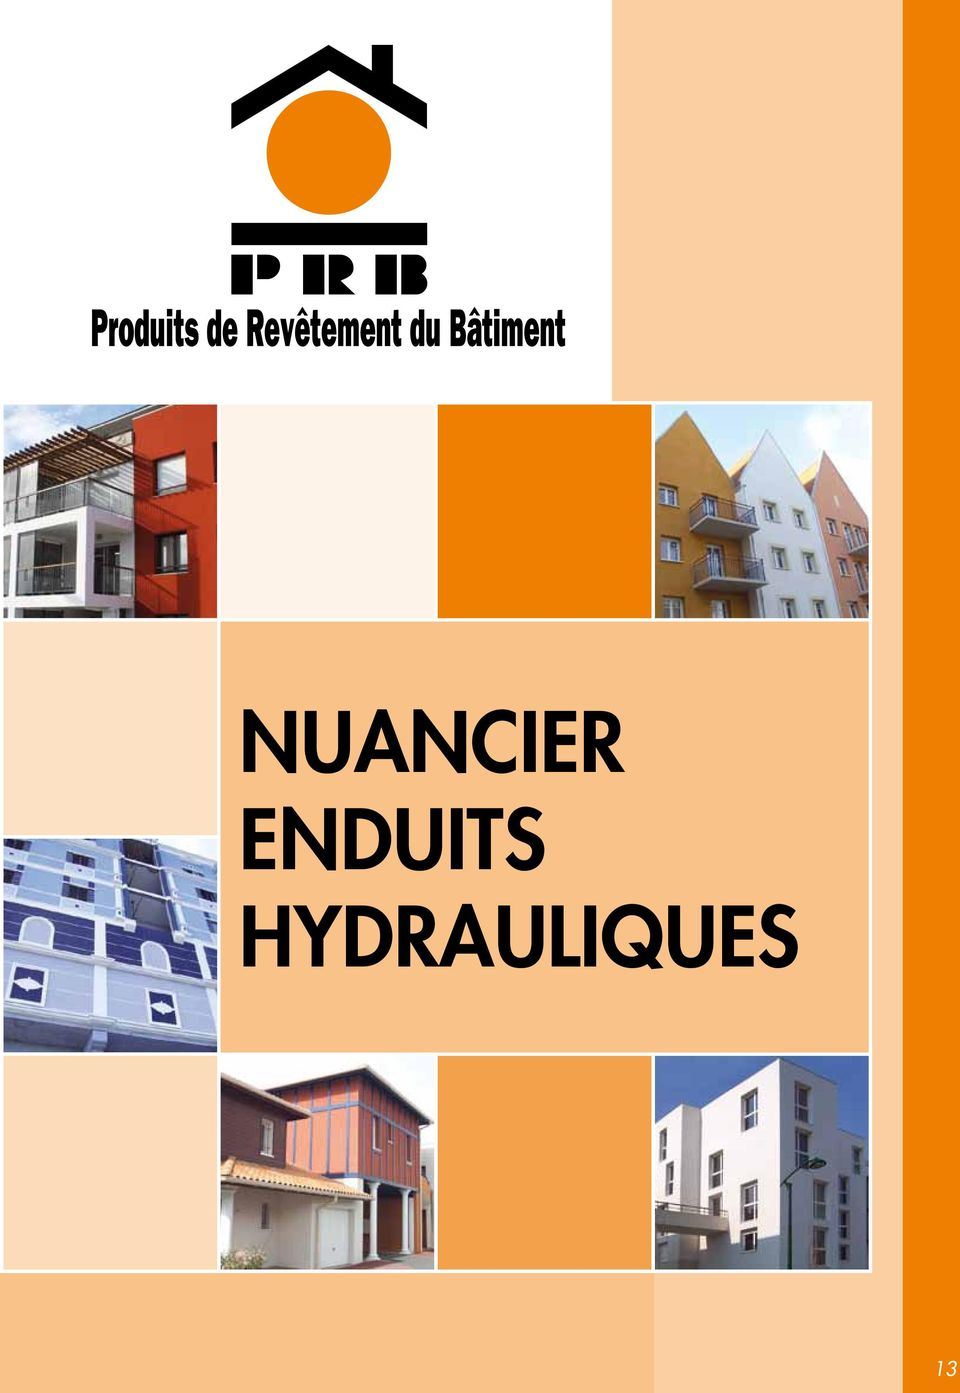 Art Et Maitrise Facades Catalogue Nuanciers Teintes Lumiere Nuances Coloration Textures Pdf Telechargement Gratuit